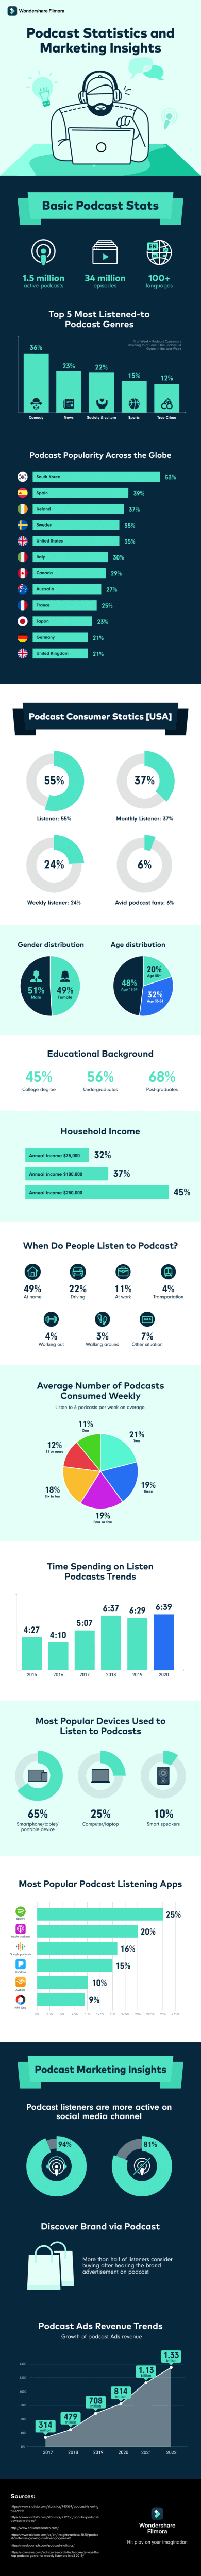 Podcast Stats and Marketing Insights